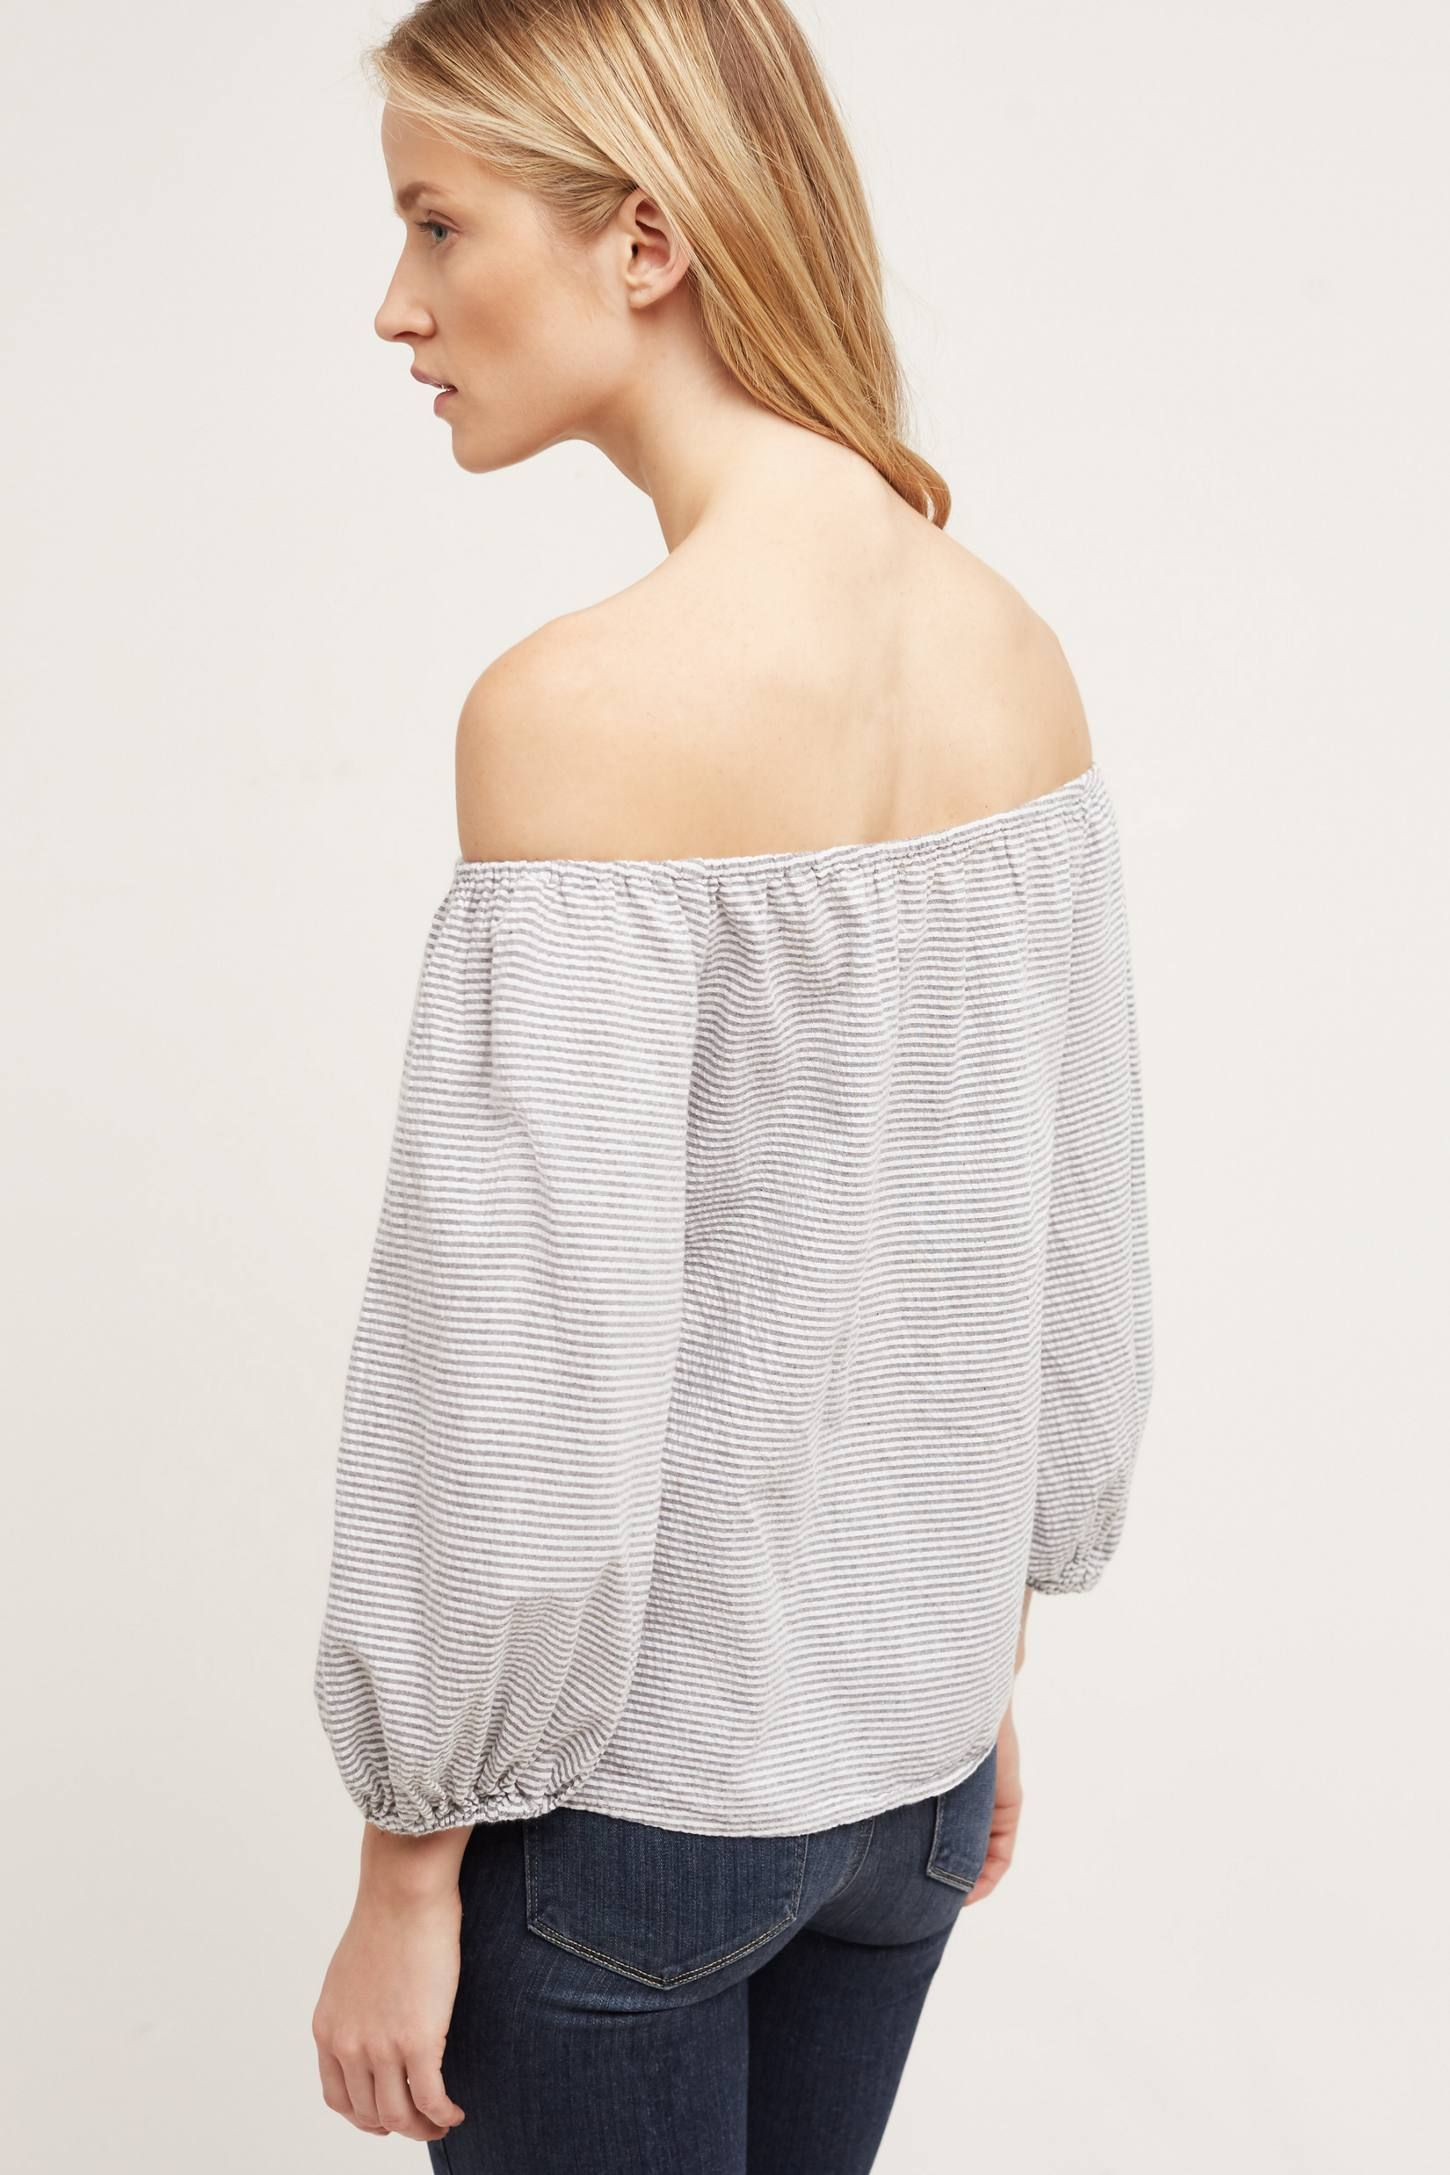 Bretta Off-The-Shoulder Top - anthropologie.com